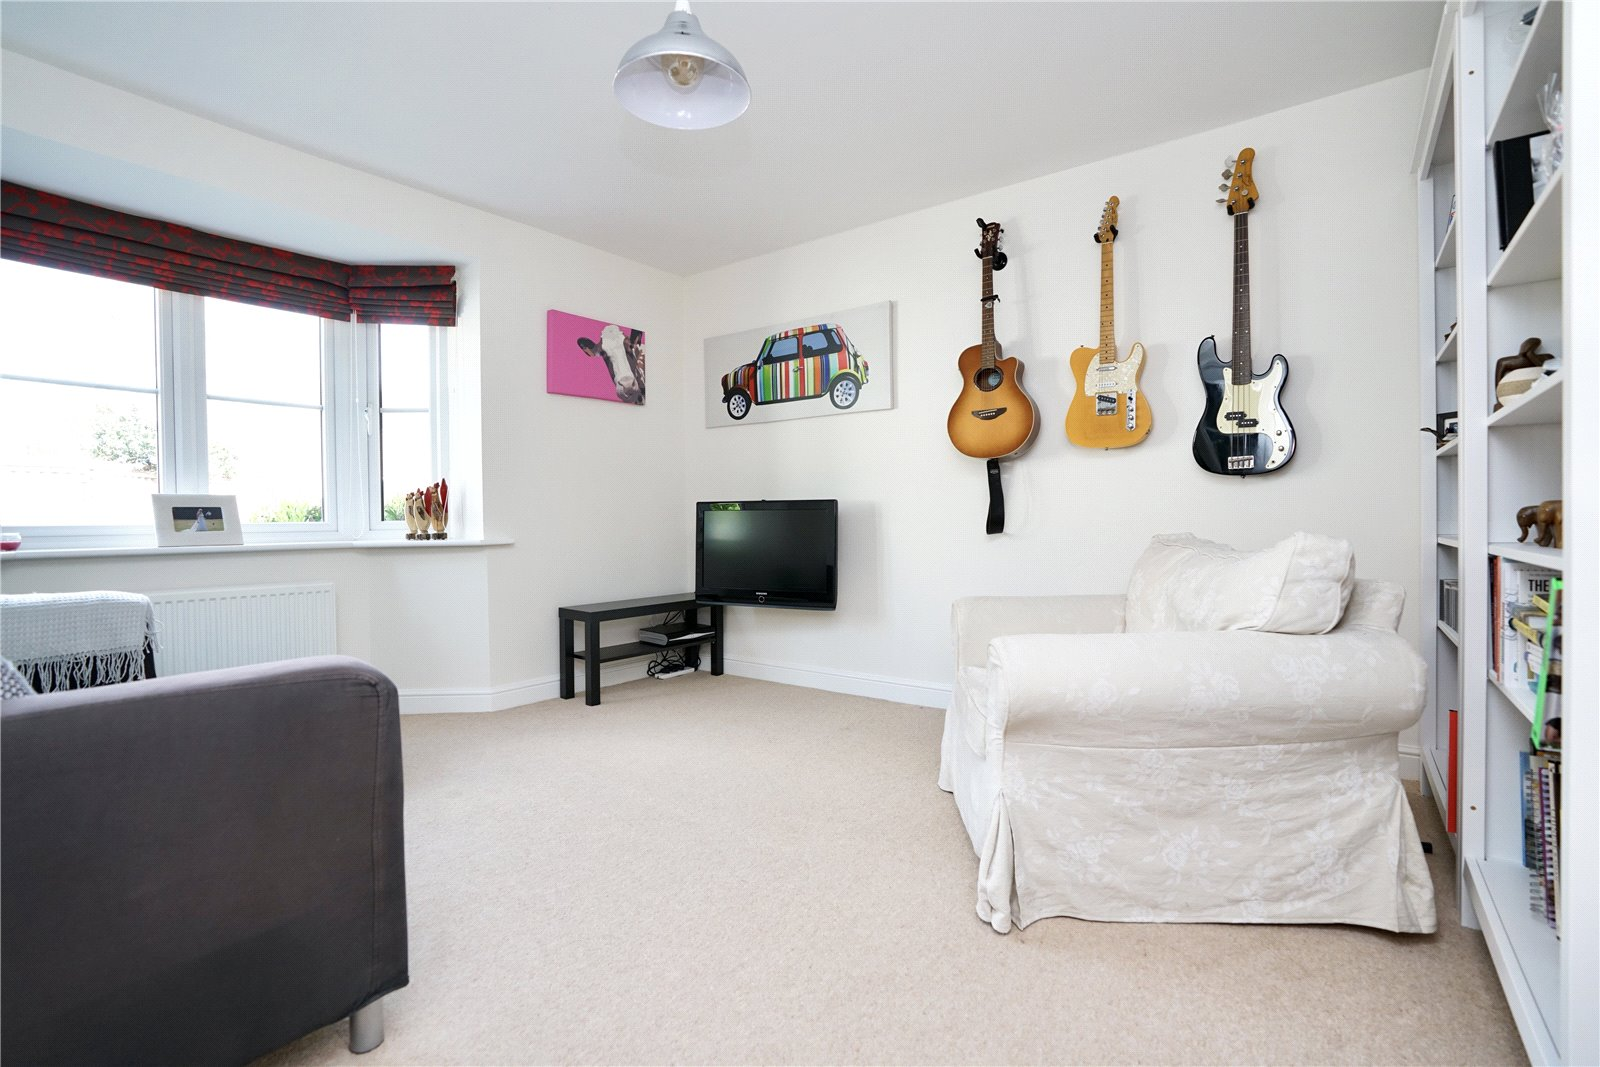 5 bed house for sale in Lannesbury Crescent, St. Neots  - Property Image 7